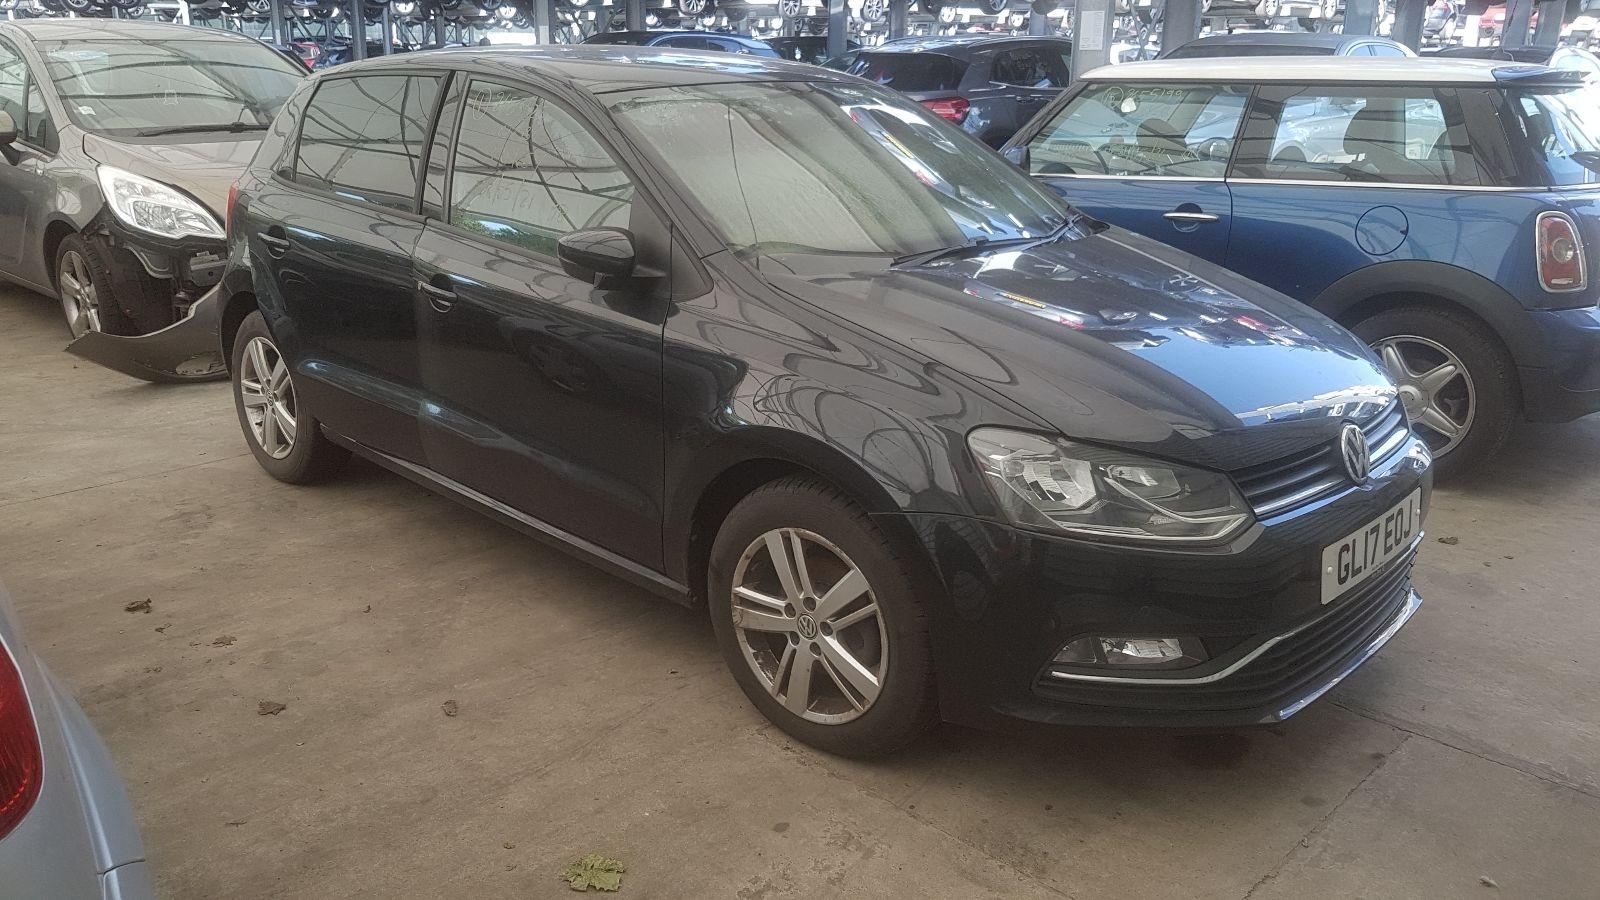 Image for a 2017 Volkswagen Polo 1.2 Petrol CJZC Engine